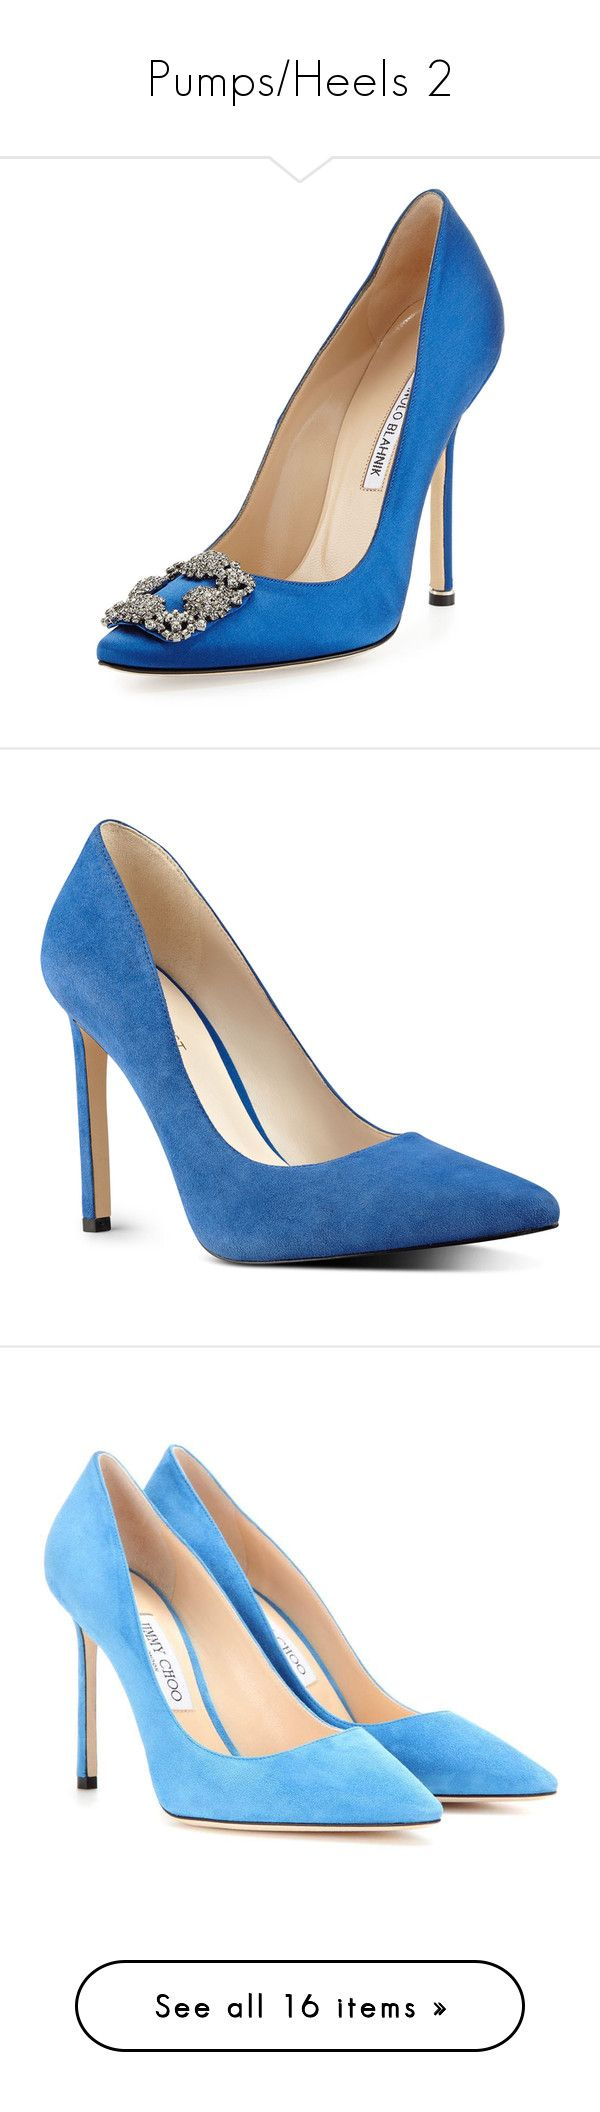 """""""Pumps/Heels 2"""" by spectre11 ❤ liked on Polyvore featuring shoes, pumps, cobalt, pointy toe pumps, satin shoes, pointed toe pumps, satin pumps, manolo blahnik shoes, electric blue suede and royal blue shoes"""